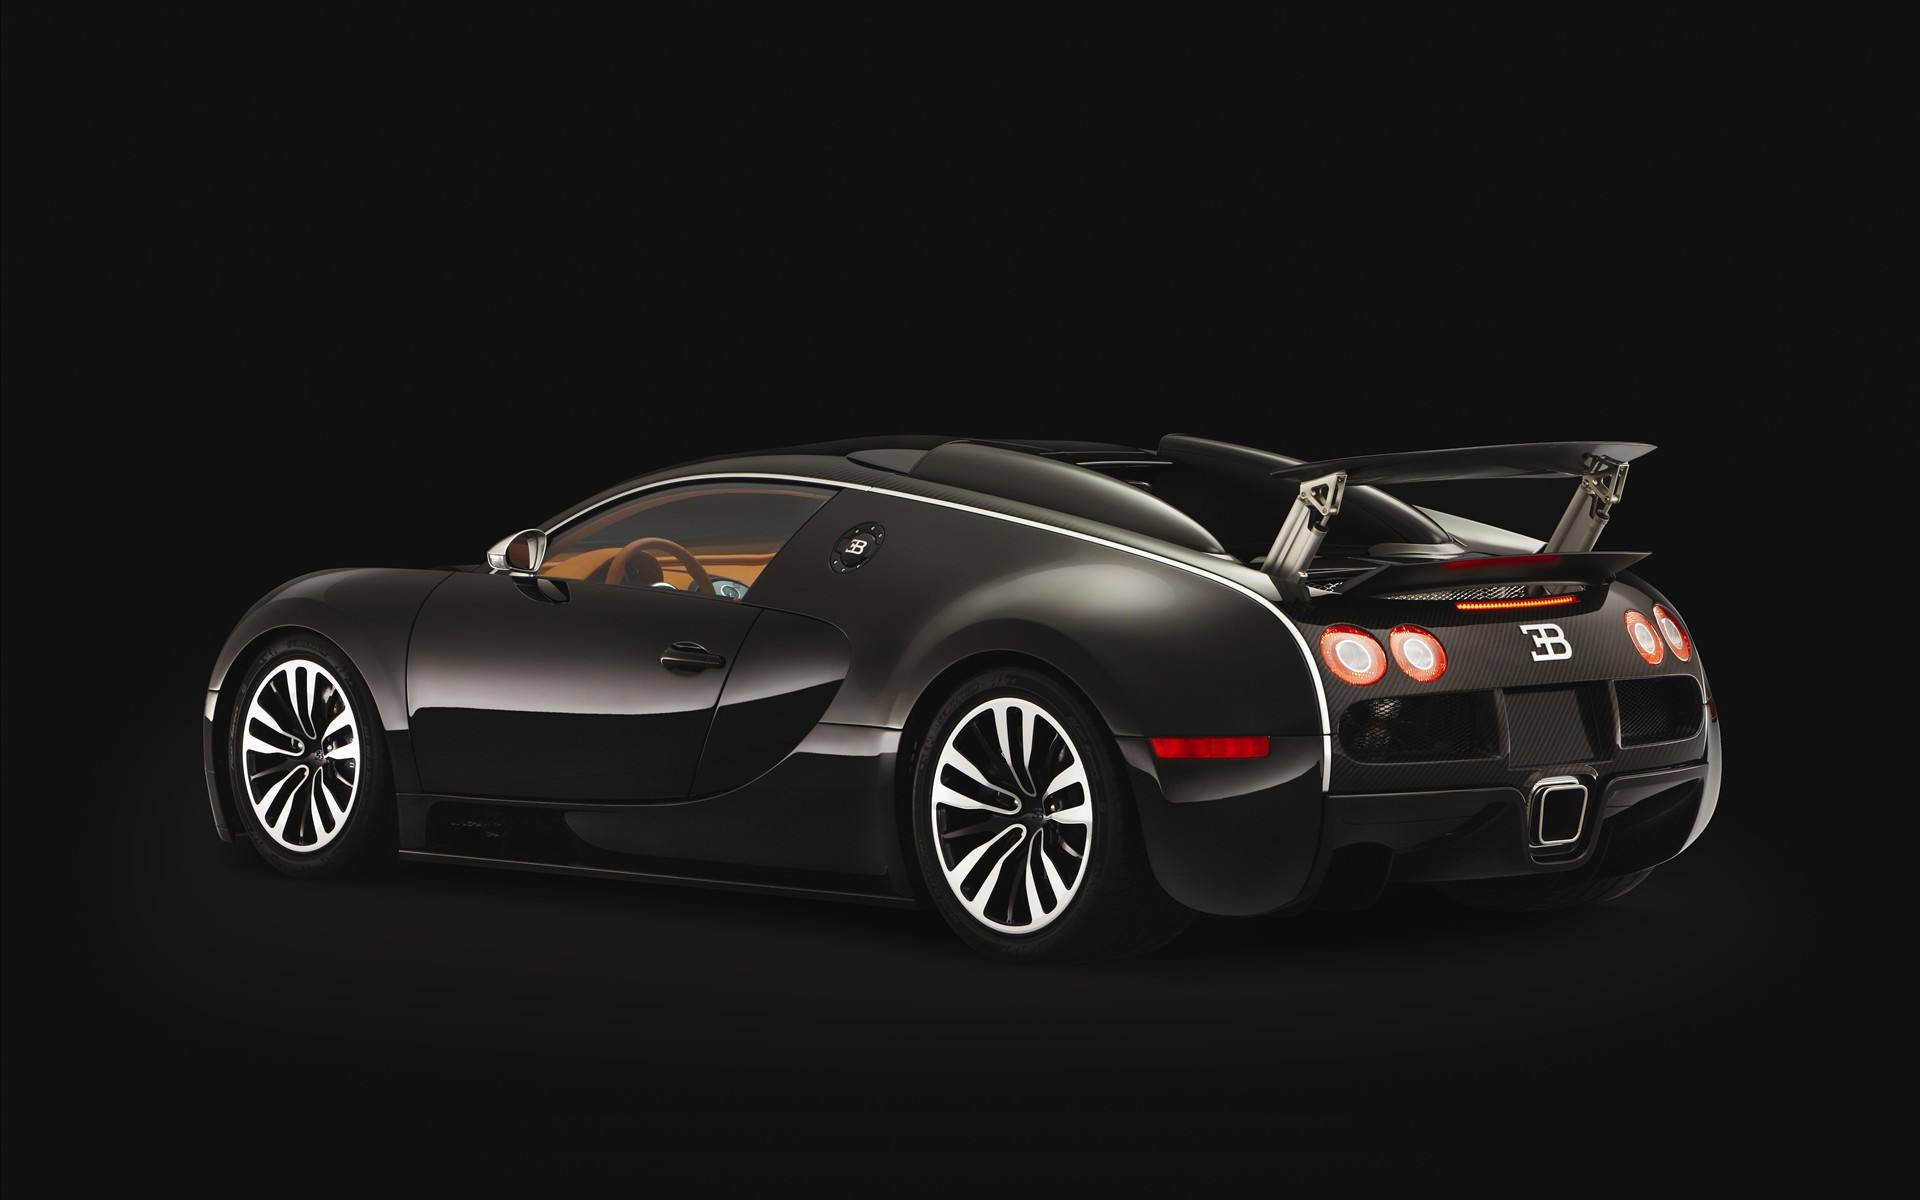 Black Bugatti Veyron | HD Wallpapers